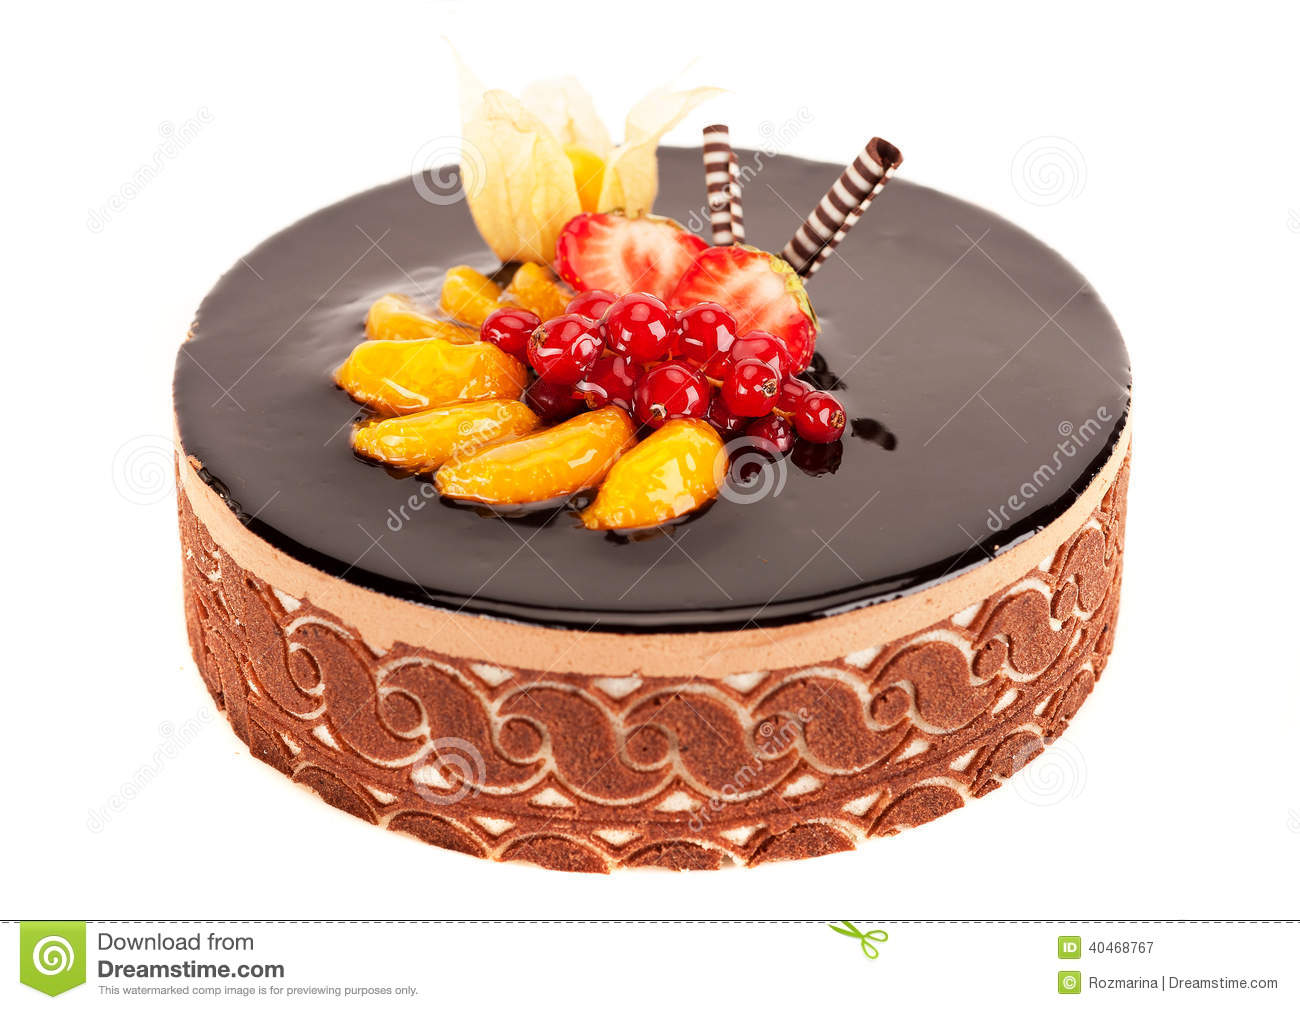 Cake With Berries, Fruit And Chocolate Stock Image - Image ...